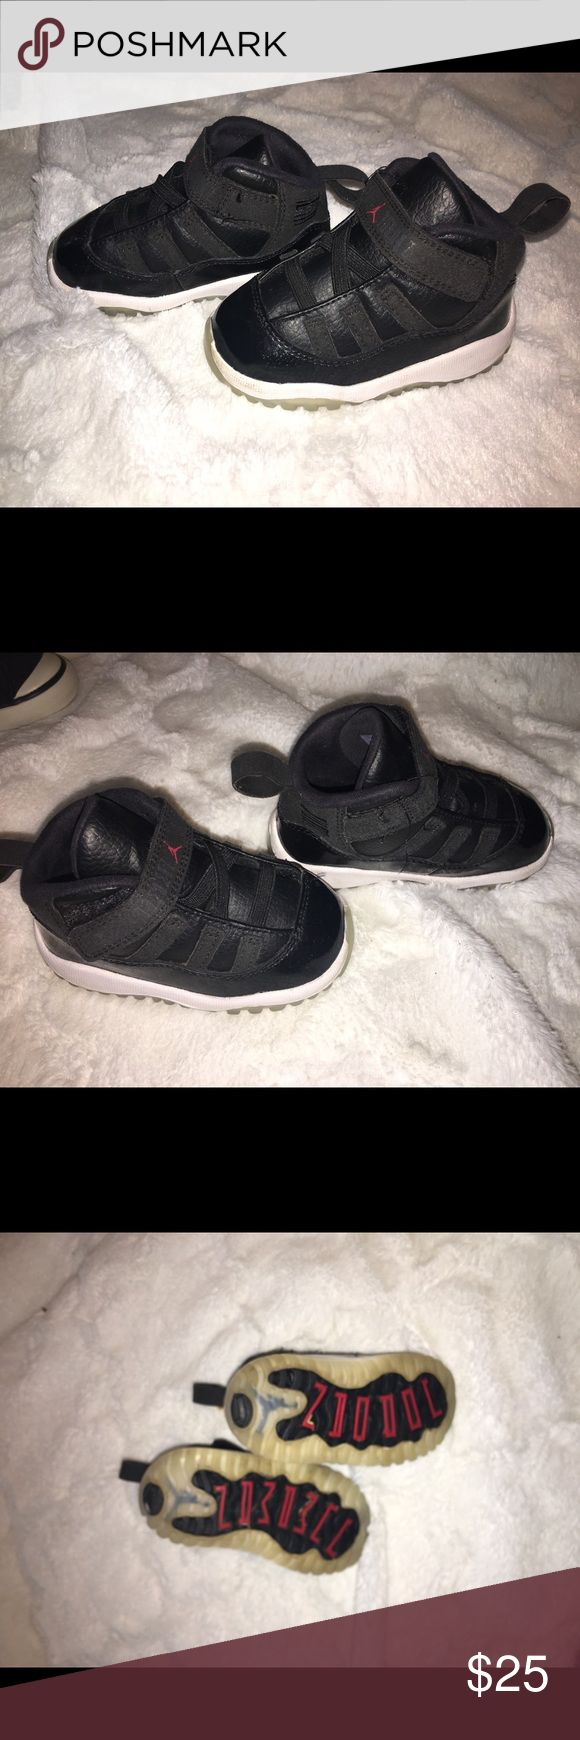 Toddler Jordans size 5c lol no fancy names here for I am not an jordan expert so lets keep this simple. Used toddler jordan shoes, still in good condition. Comes with no box Air Jordan Shoes Sneakers